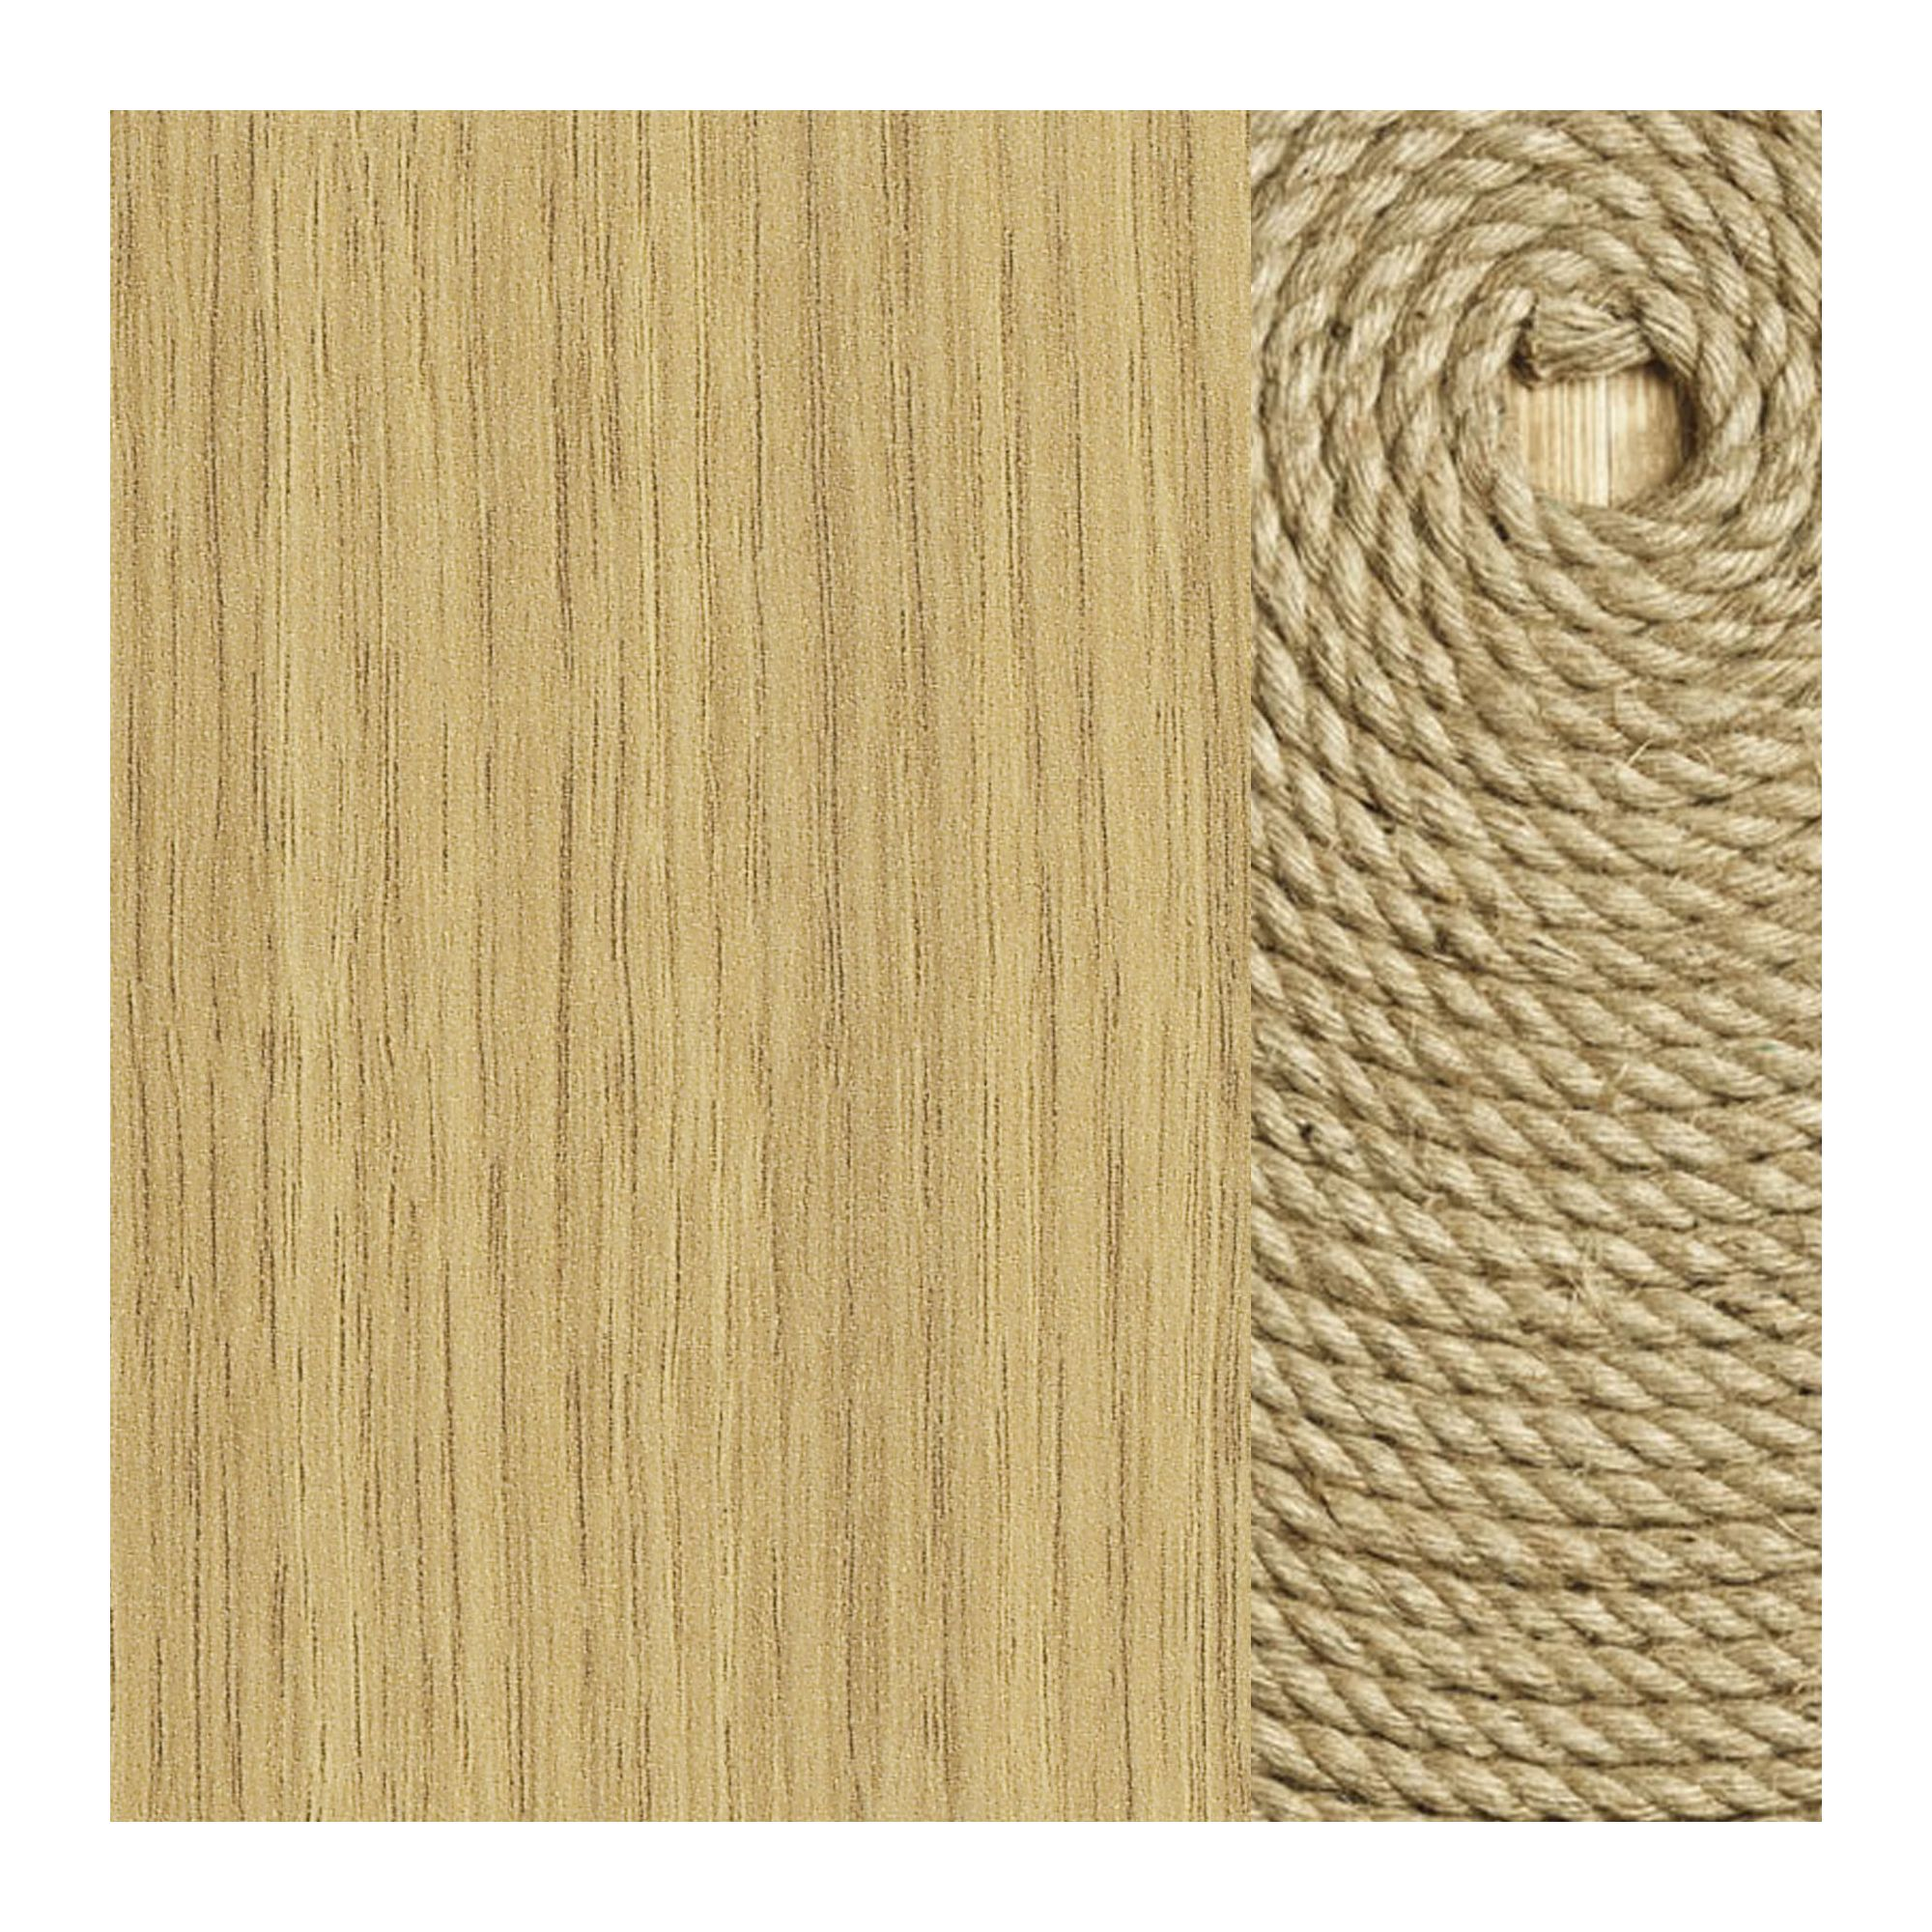 Didit Wardrobe - Essential Oak Natural at Tesco Direct